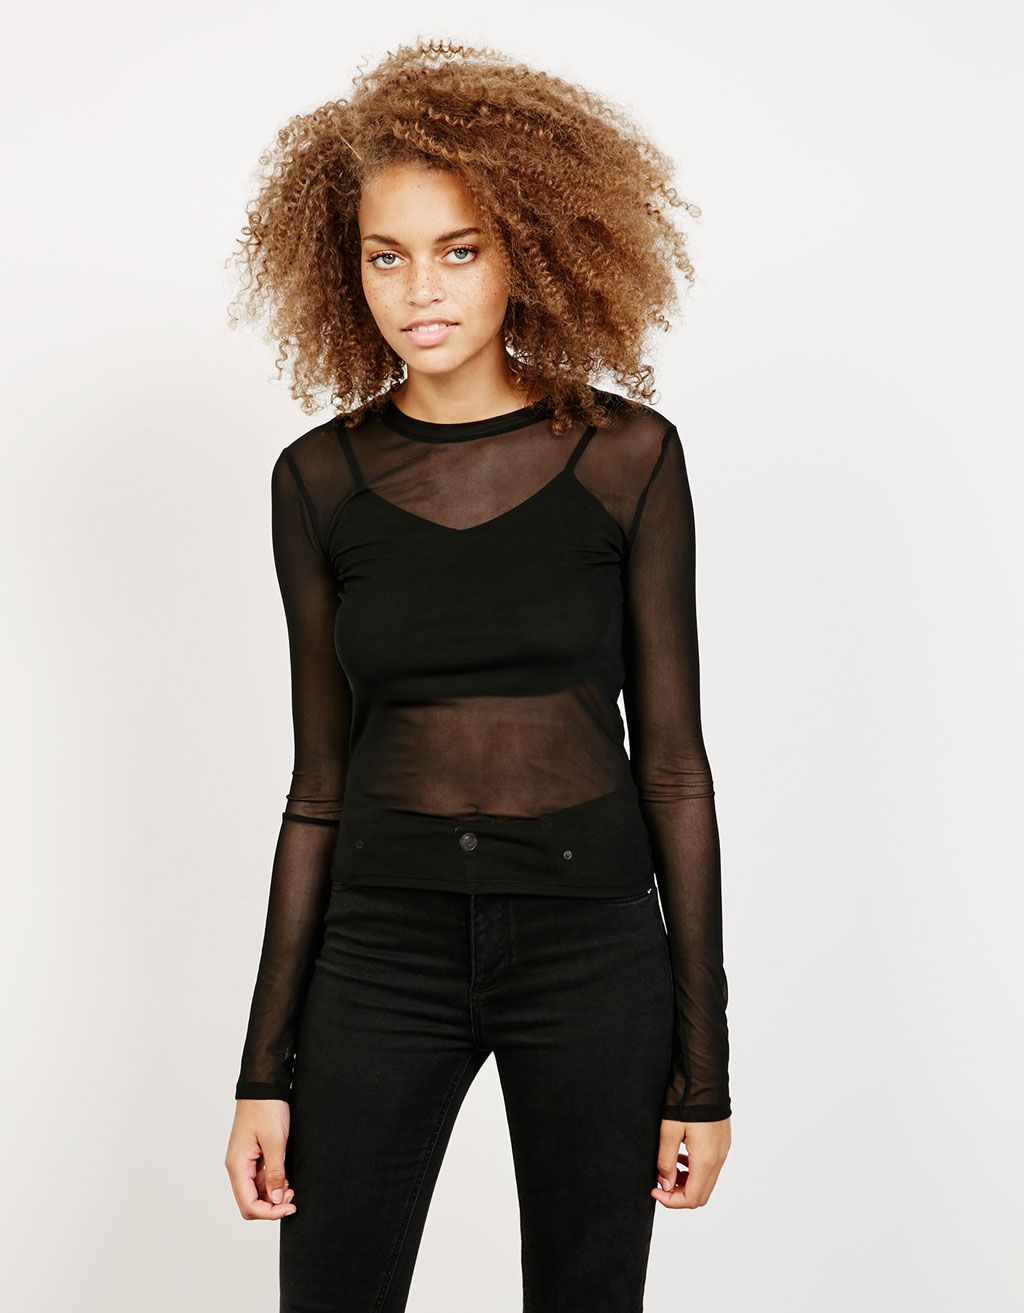 c9d3d0ef2e Tulle top with lining. Discover this and many more items in Bershka with  new products every week